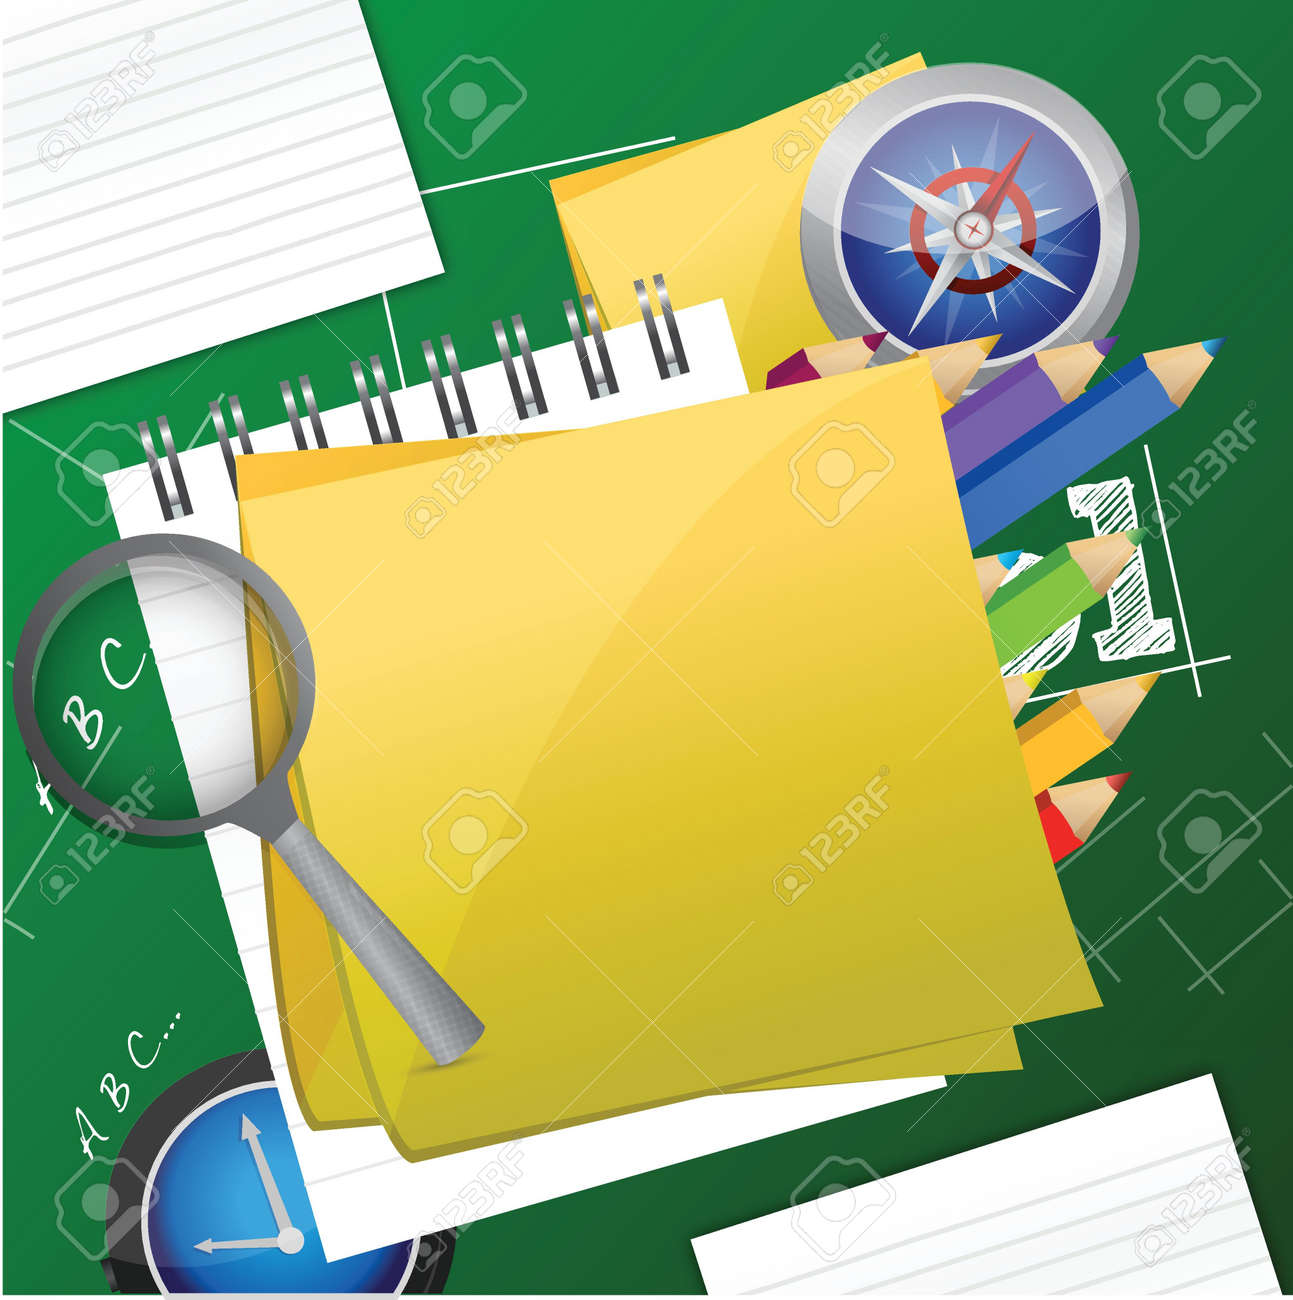 Office and student accessories graphic illustration design Stock Vector - 18063805